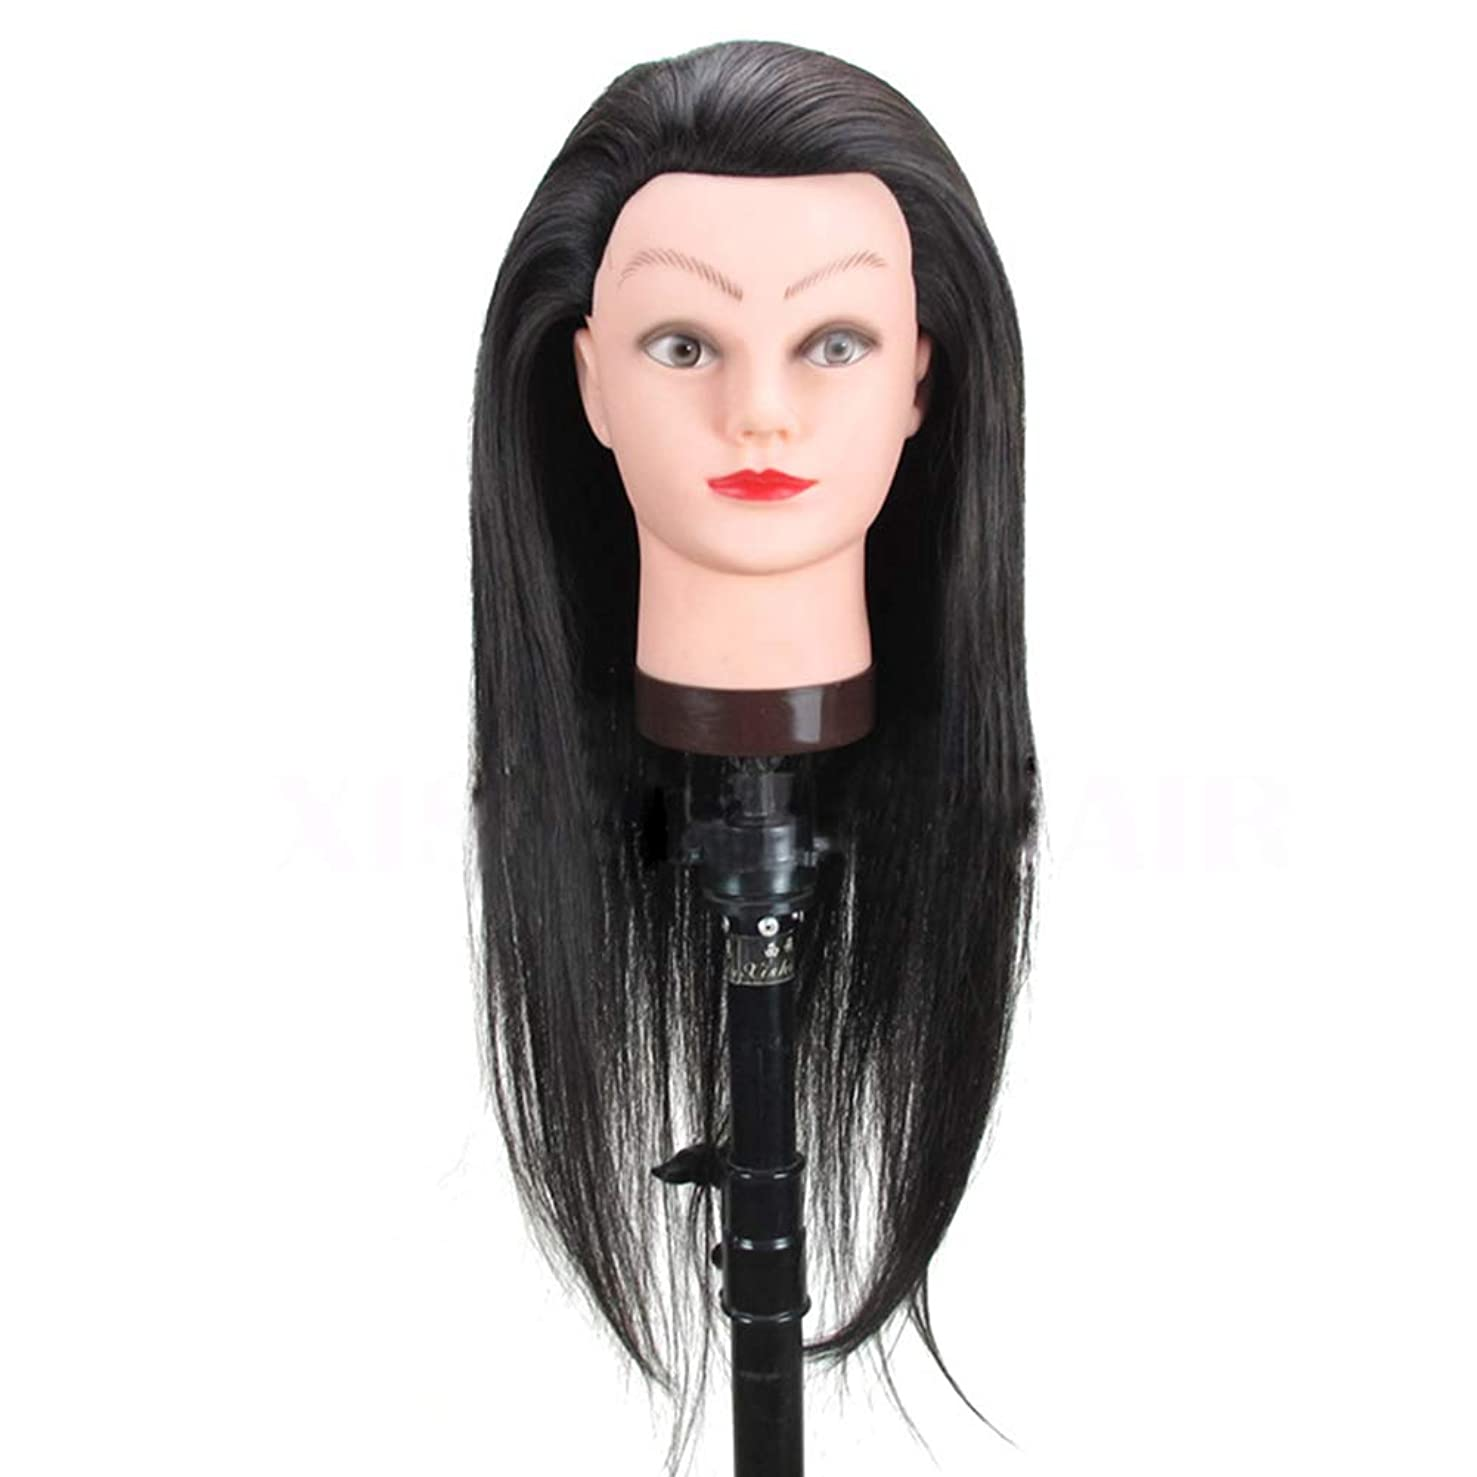 秘書販売計画ジャンピングジャックHairdressing Practice Head Model Braided Hair Training Head Head Barbershop Haircut Learning Dummy Mannequin Head.